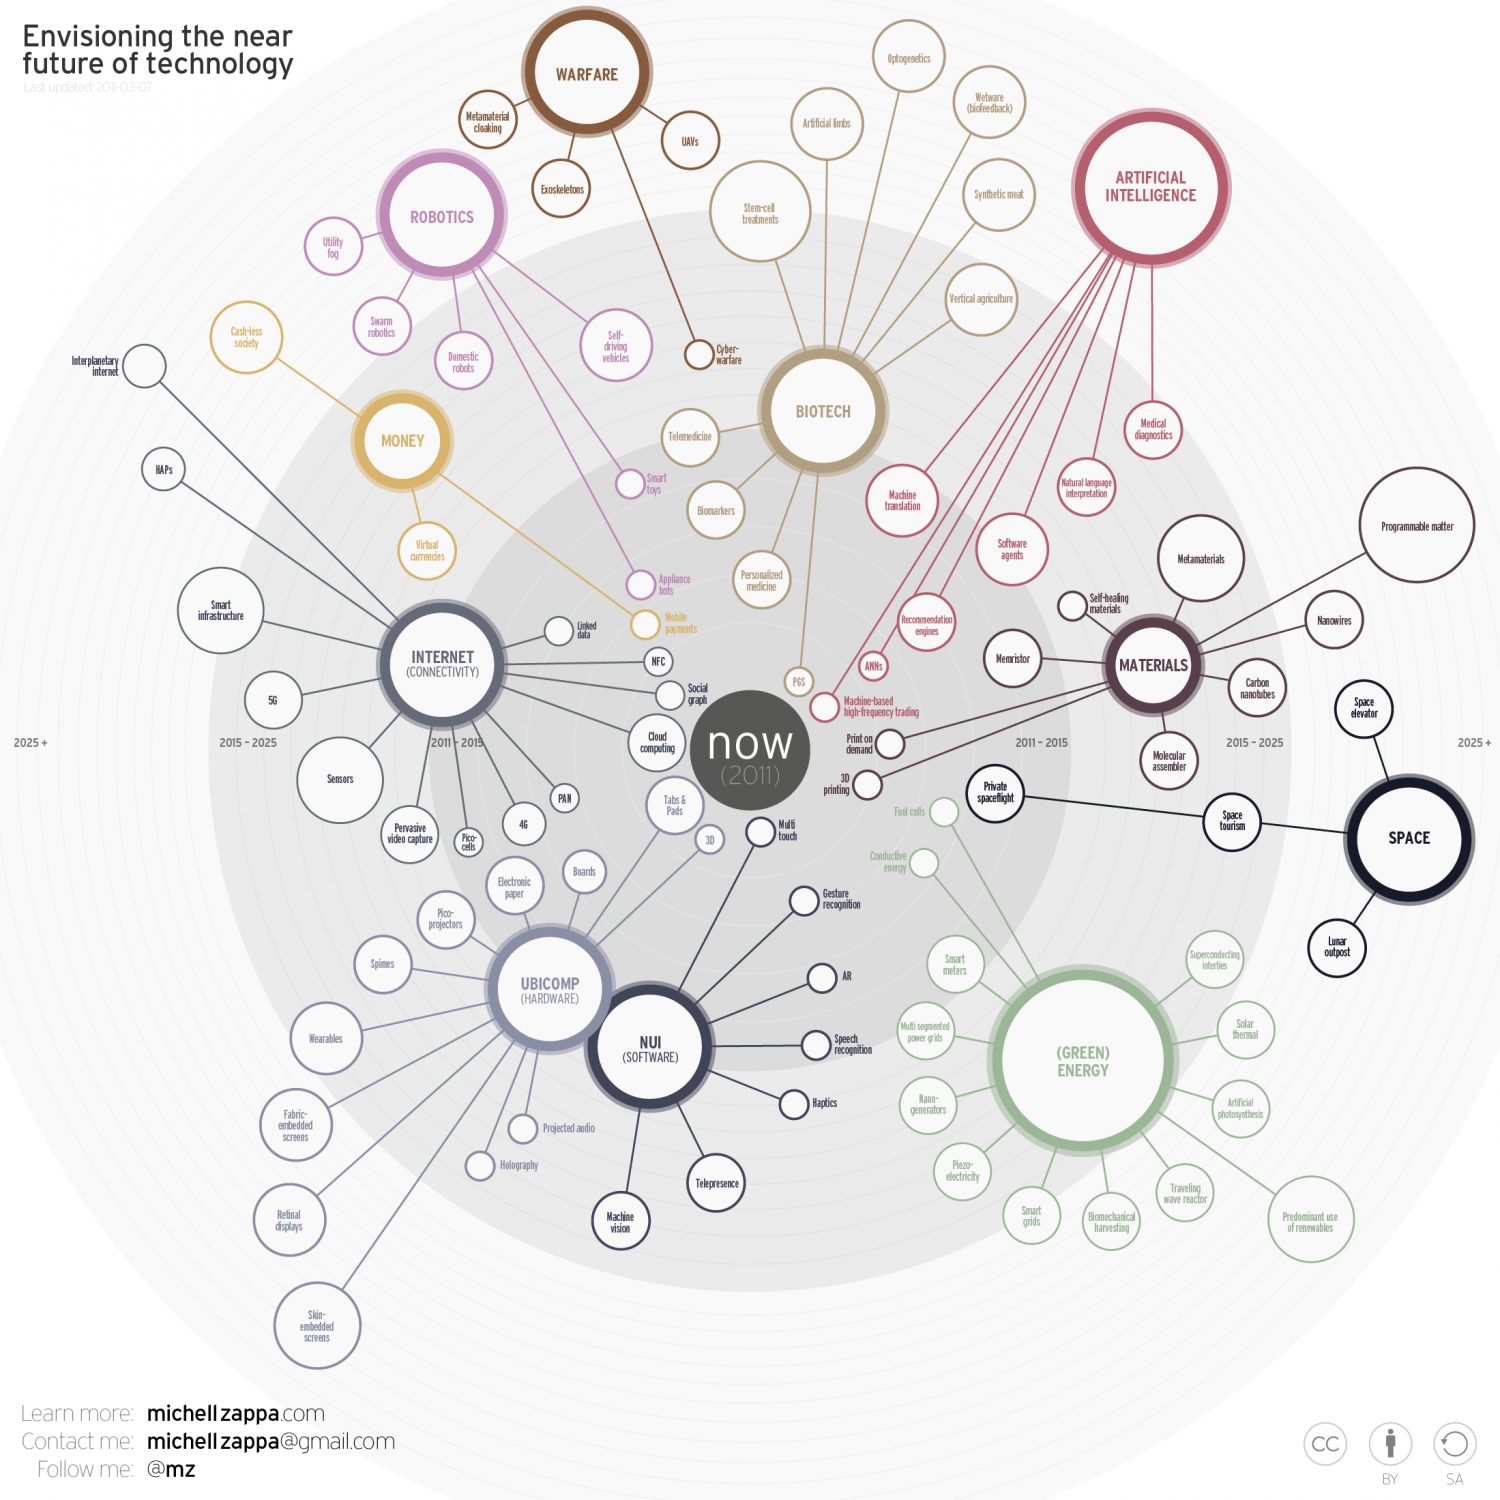 Envisioning the Near Future of Technology Infographic